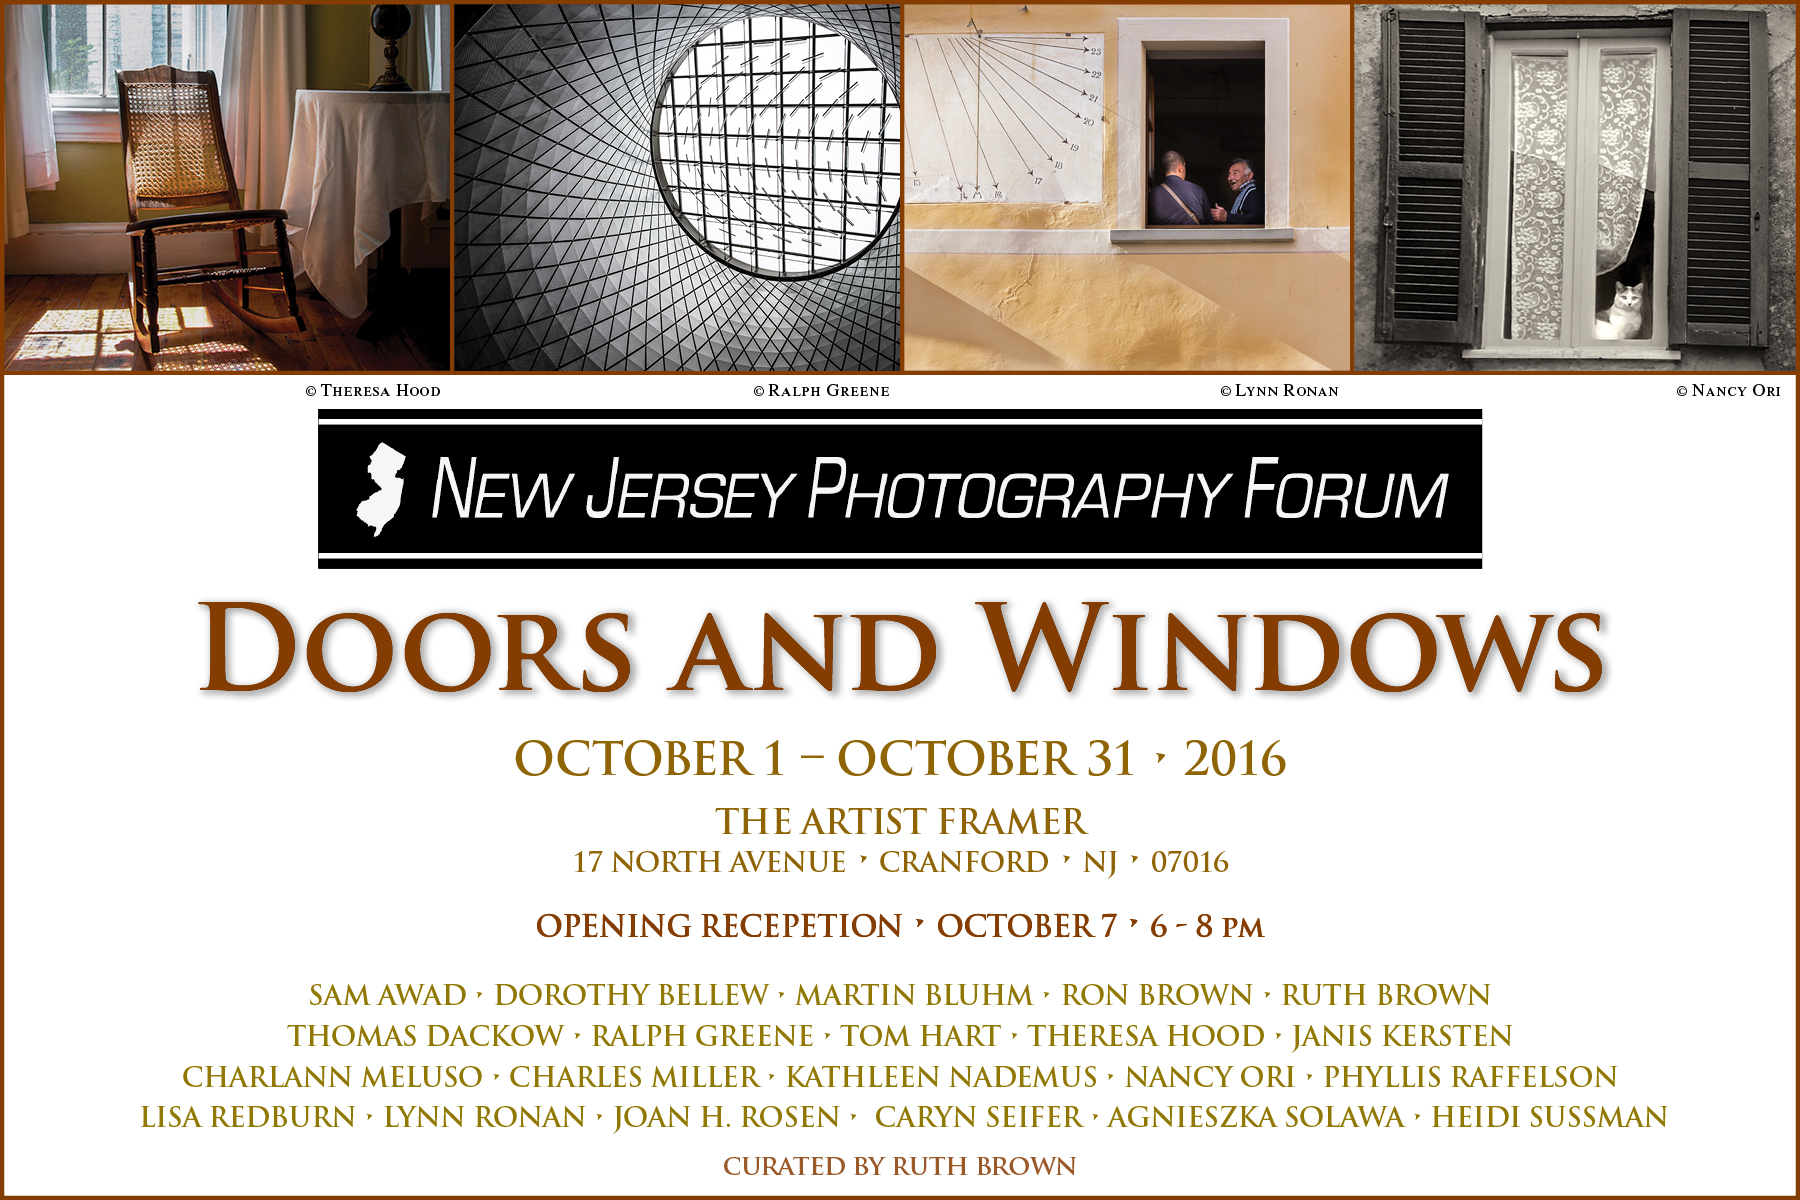 WindowsAndDoors_Flyer_2016